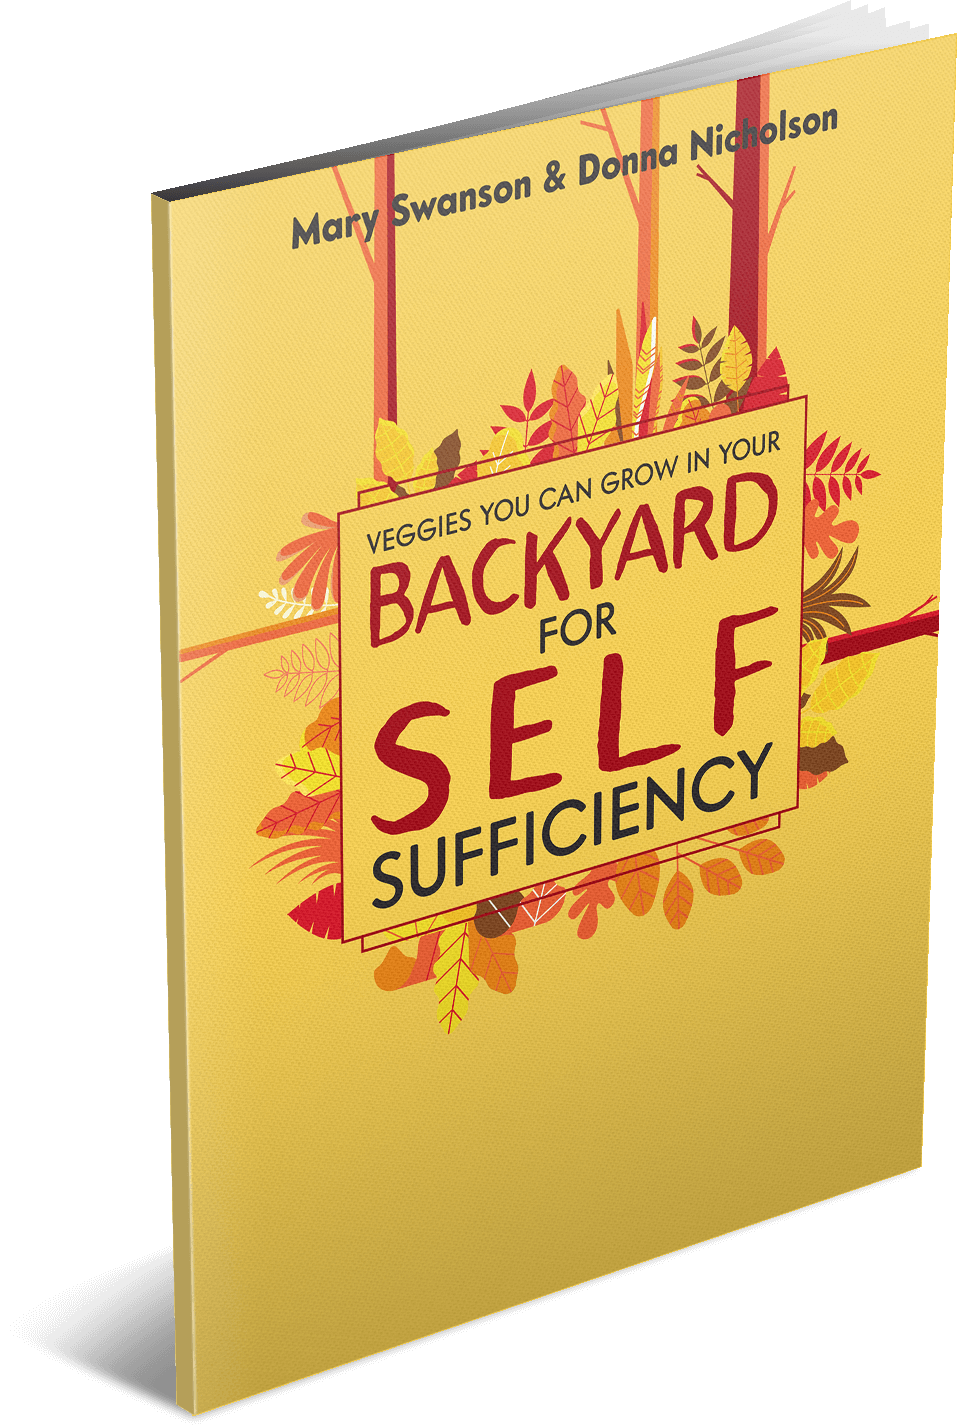 Backyard for Self Sufficiency